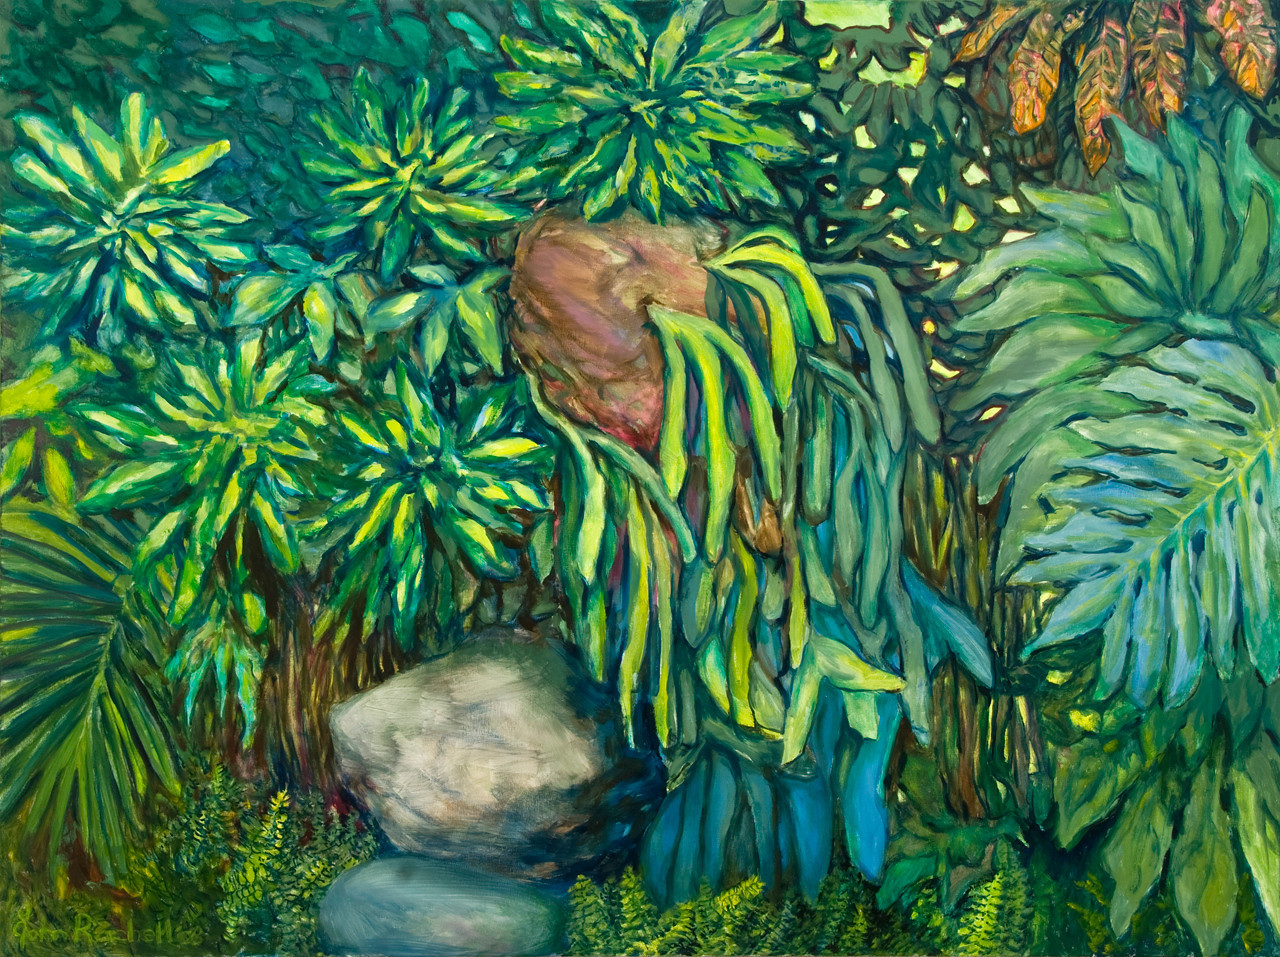 """© 2008 John Rachell Title: Garden, February 22, 2008 Image Size: 48"""" w by 36"""" d Dated: 2008 Medium and Support: Oils on linen Signed: LL Signature"""